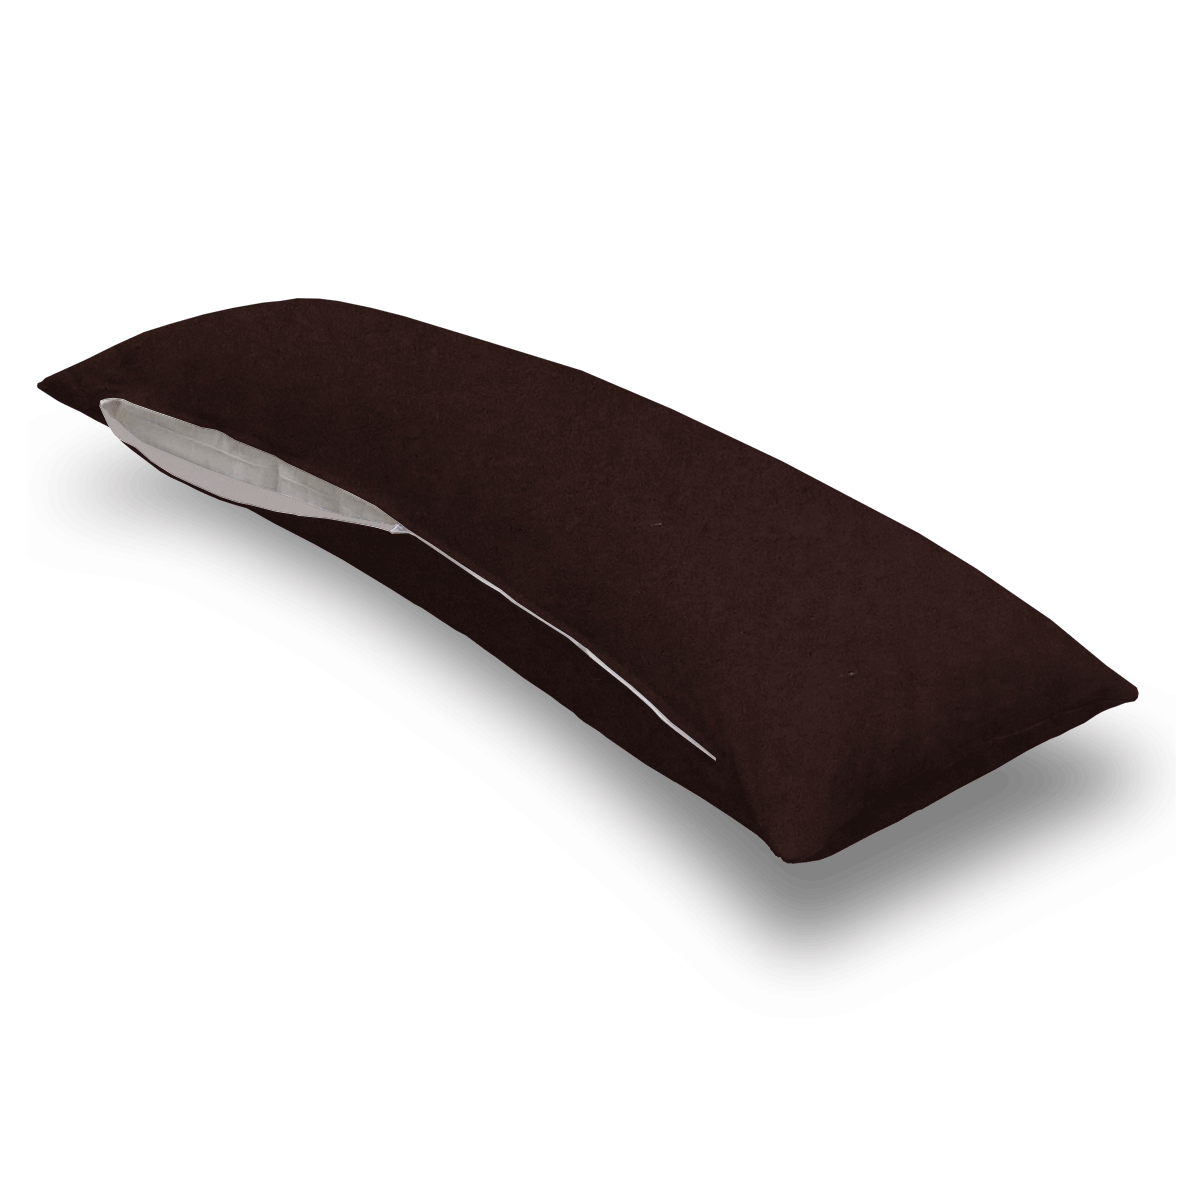 Solid Brown Jersey Knit Body Pillow Case